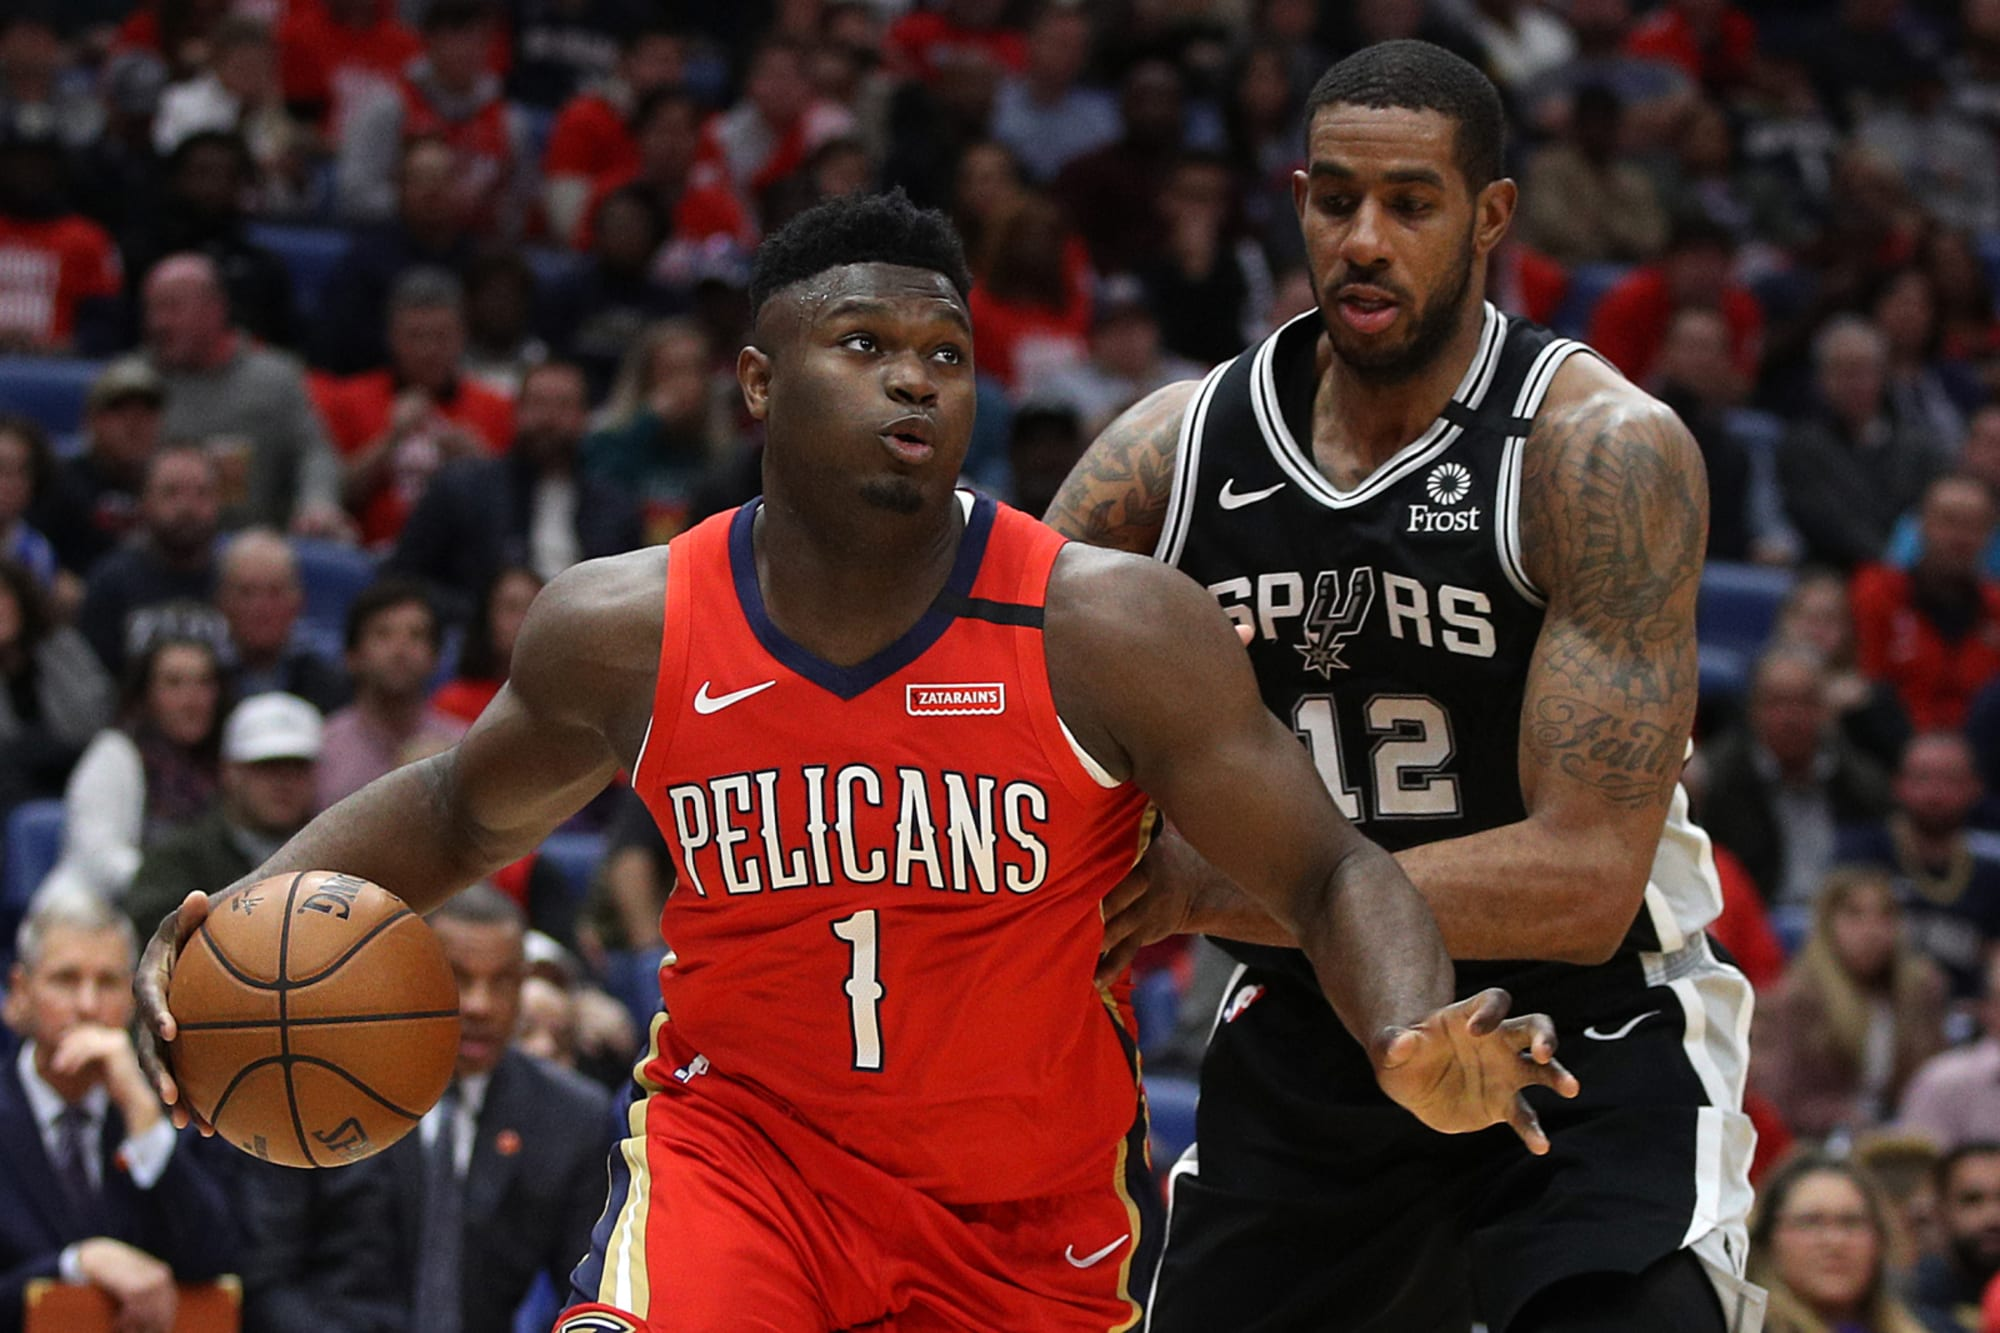 3 opposing players who will most impact San Antonio Spurs playoff hopes